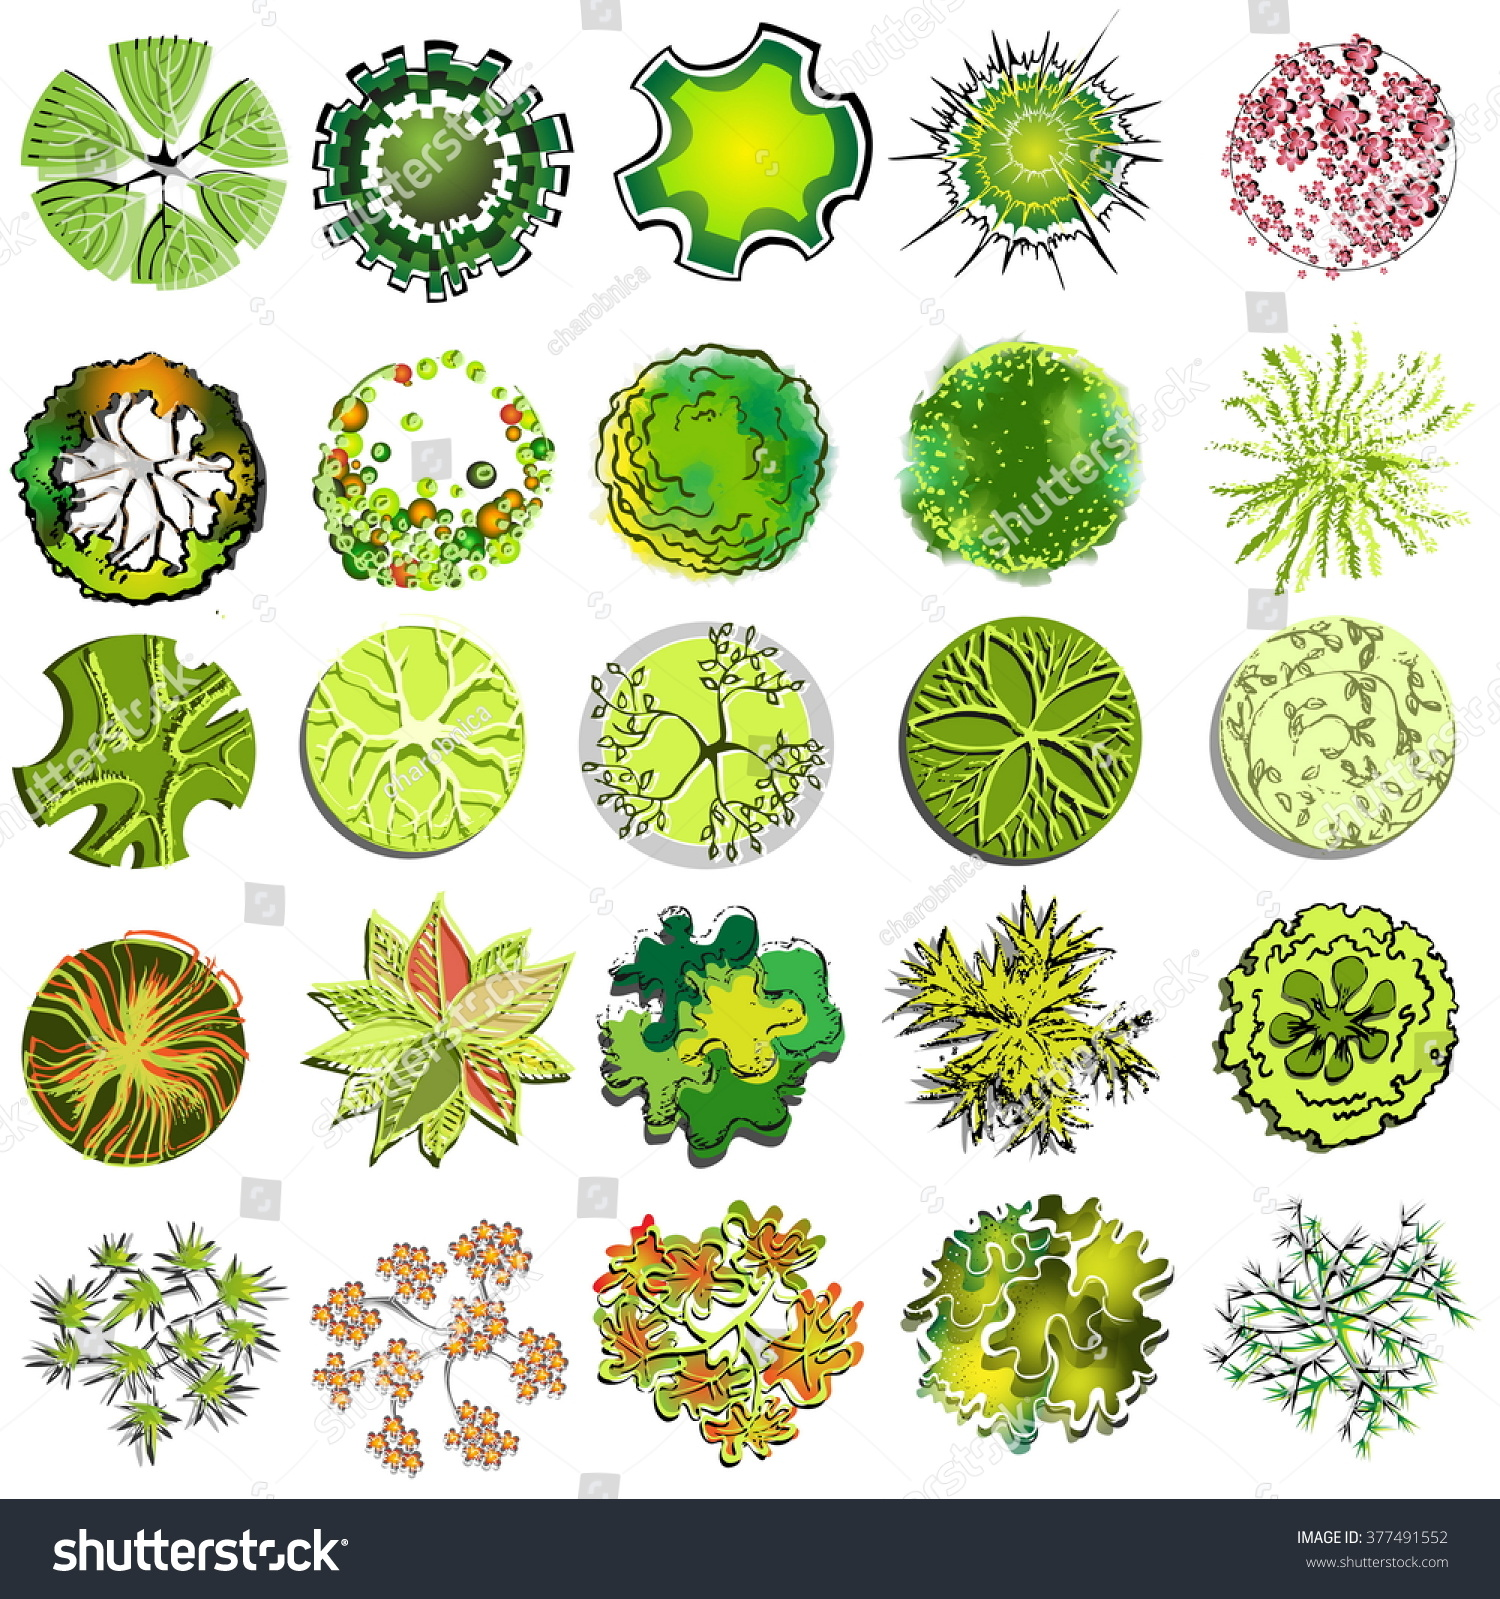 4570book Clipart Symbols Plants Garden In Pack 4930